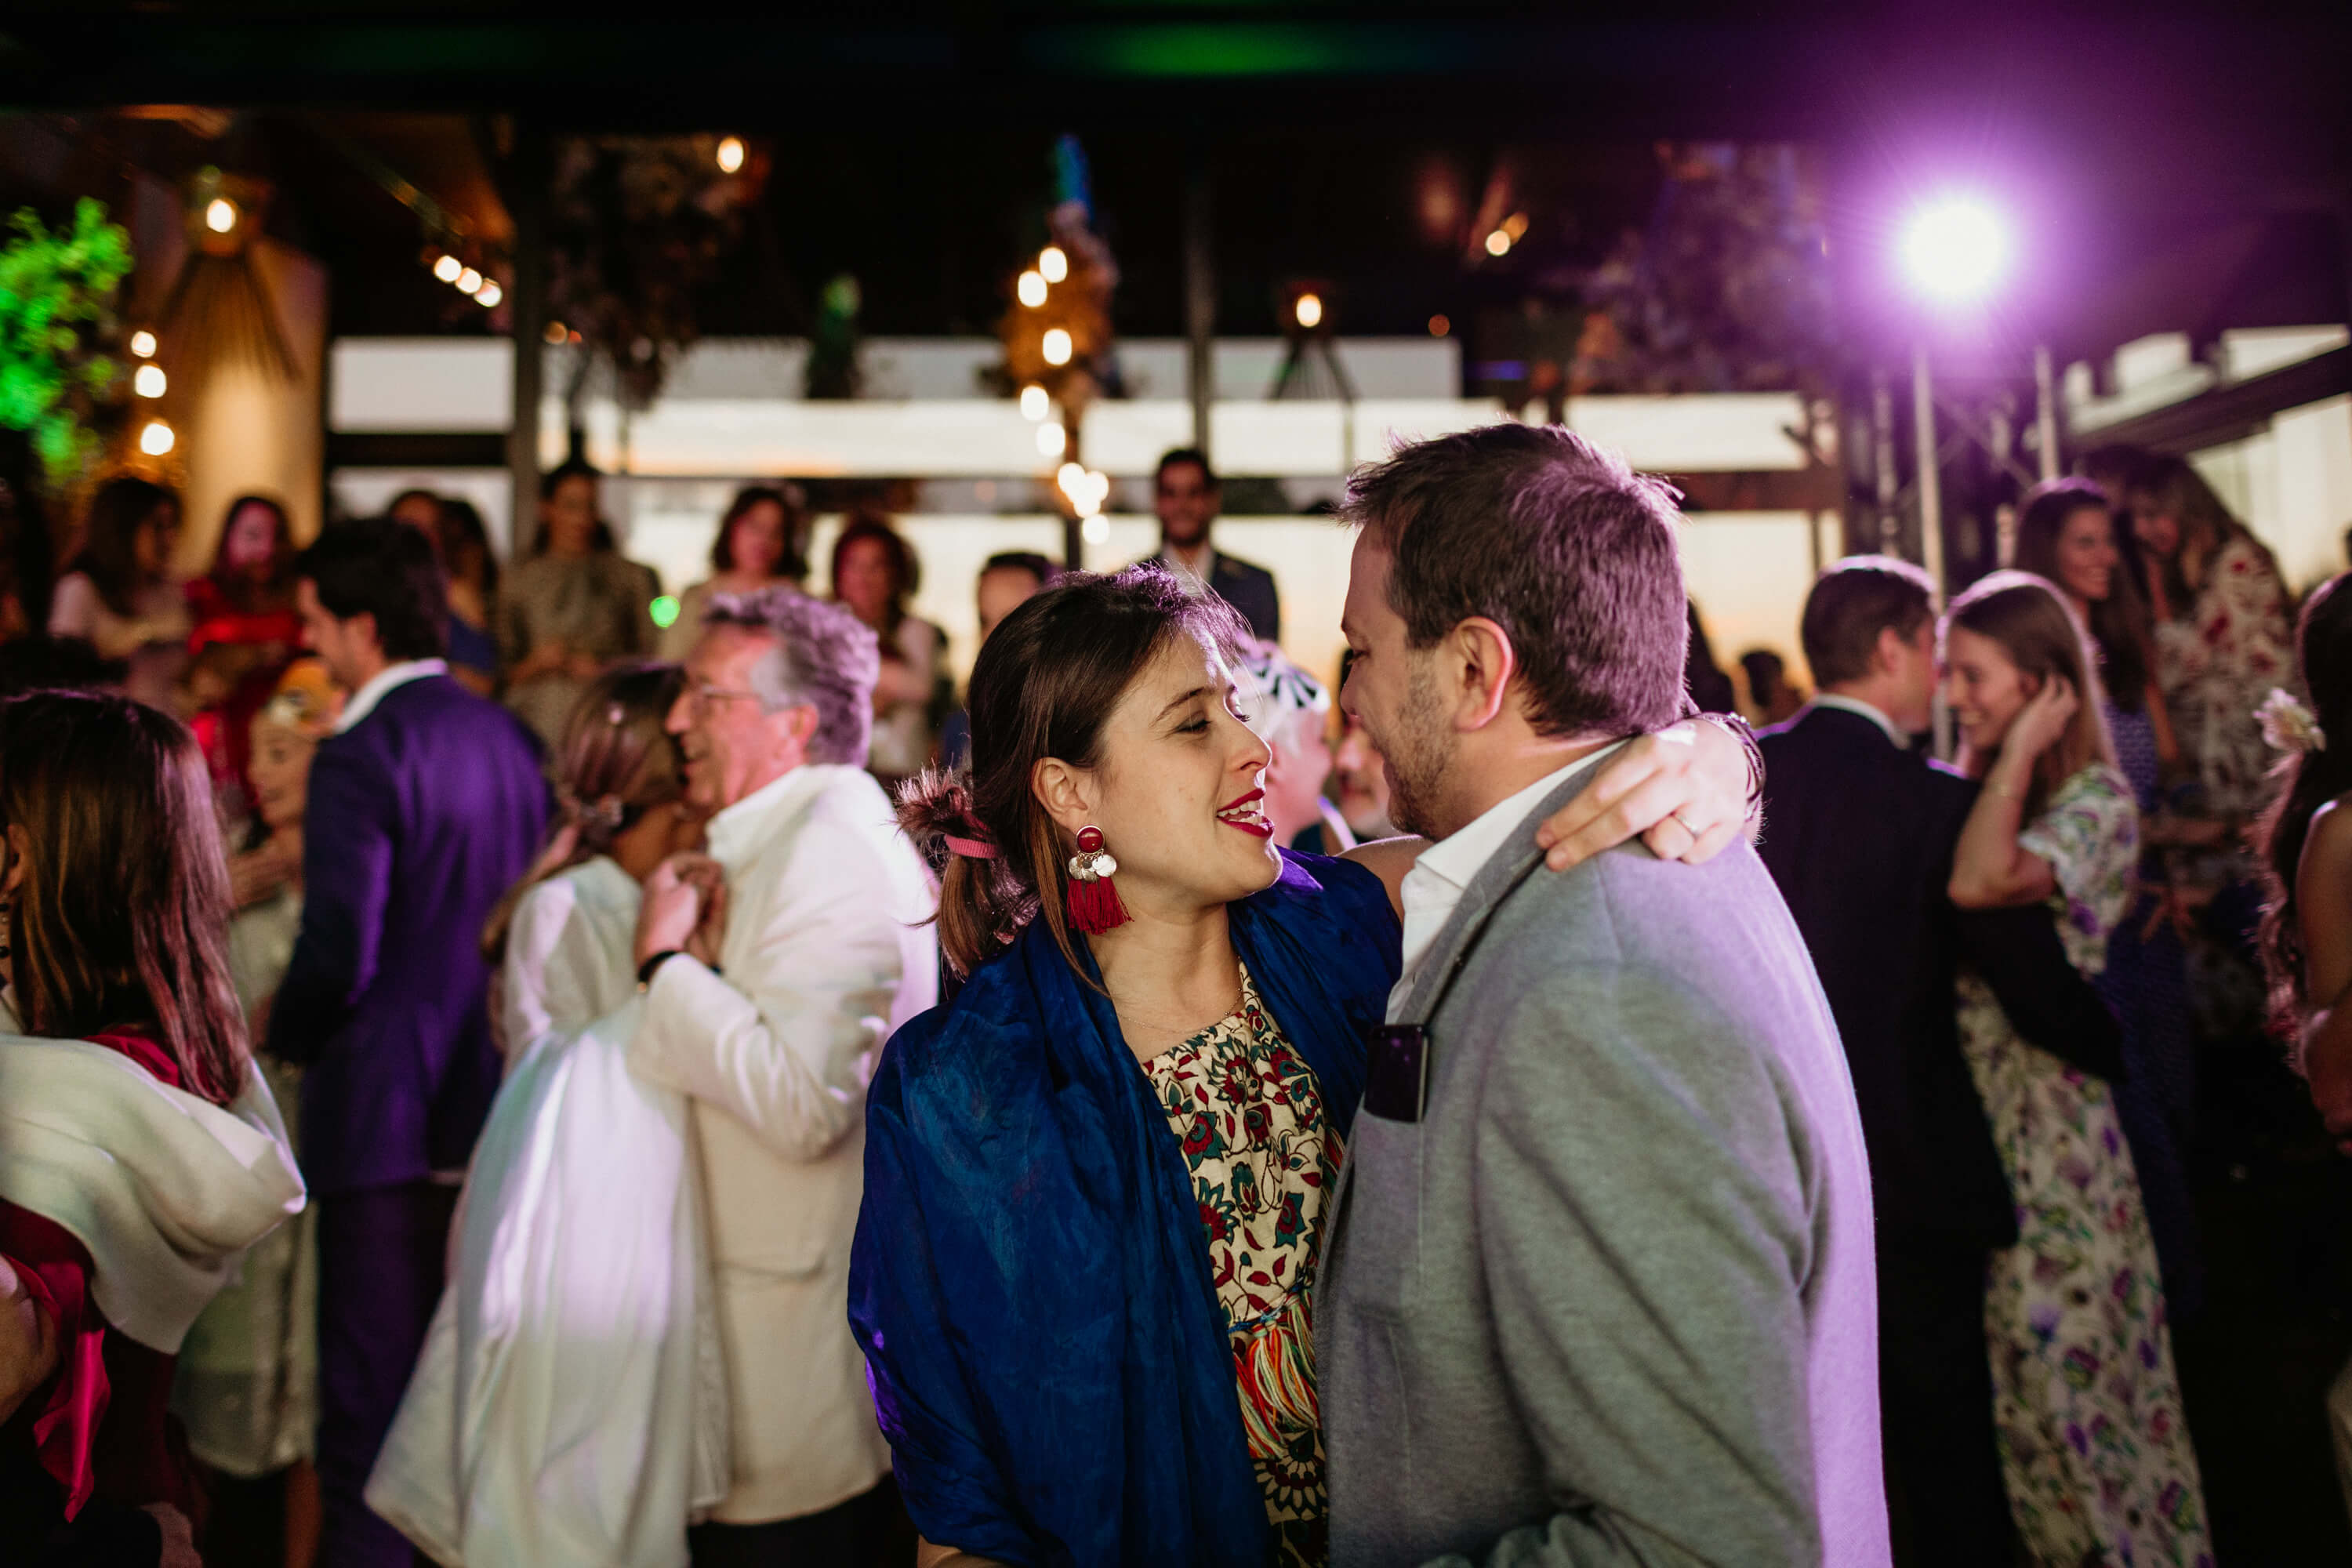 Loving couple staring into one anothers eye as they dance in celebration.